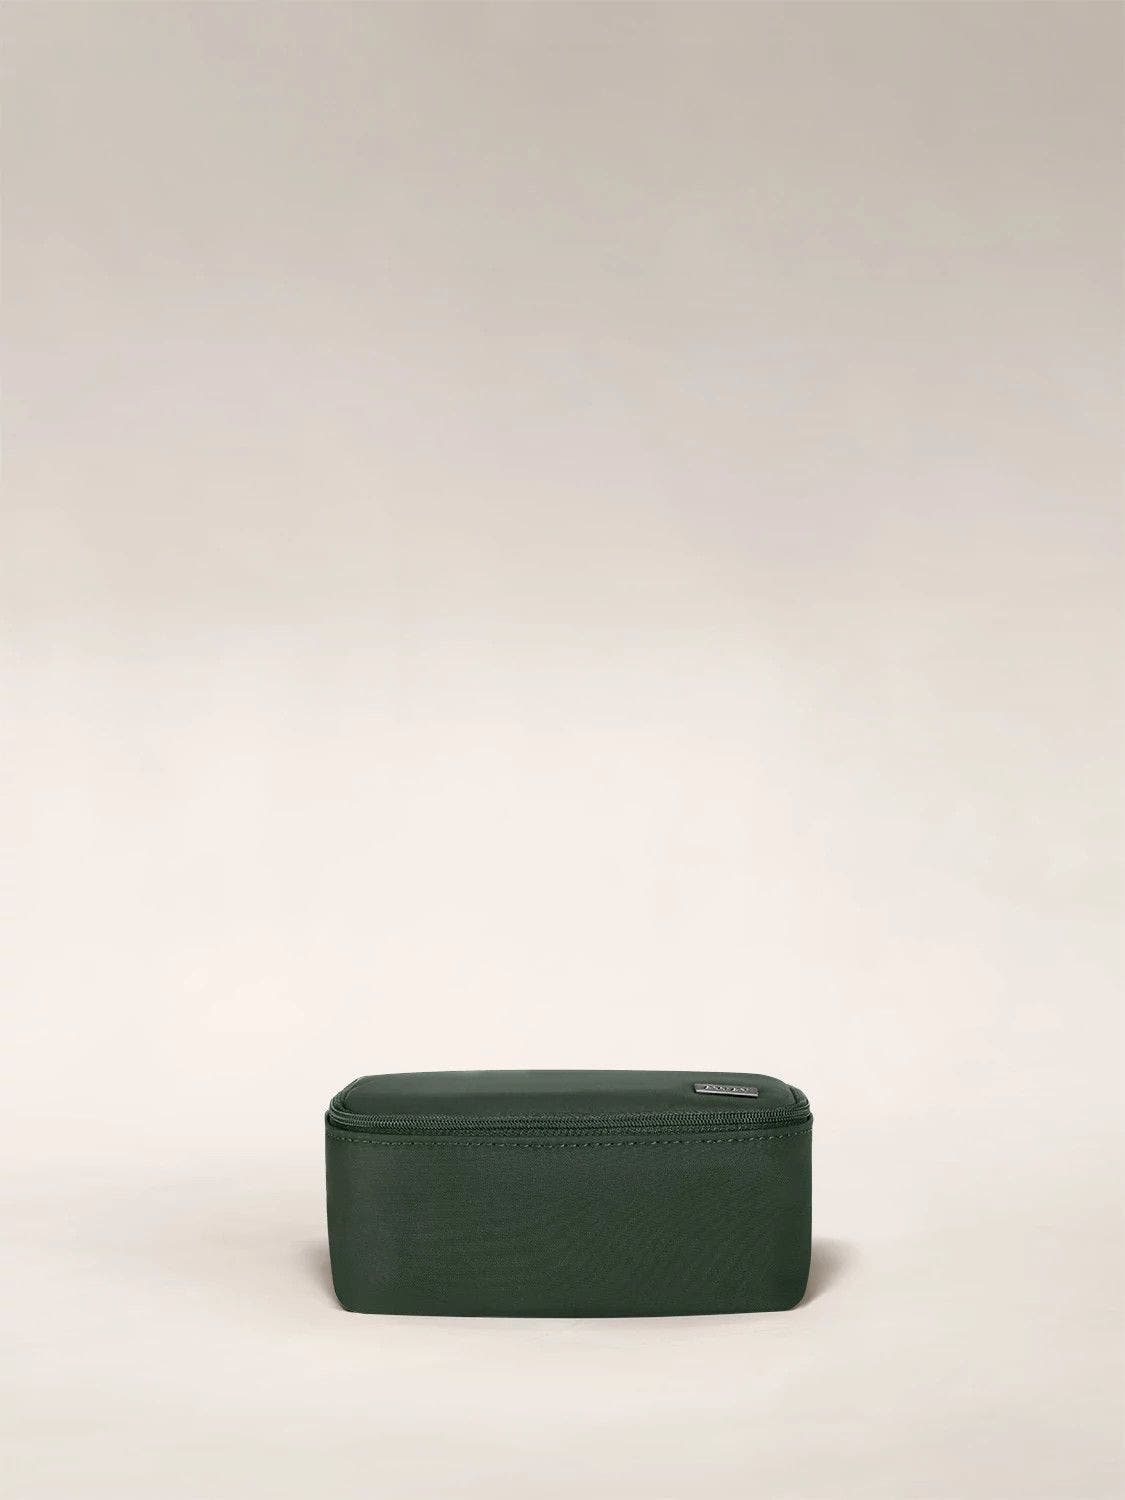 A travel tech organizer case from Away in green.